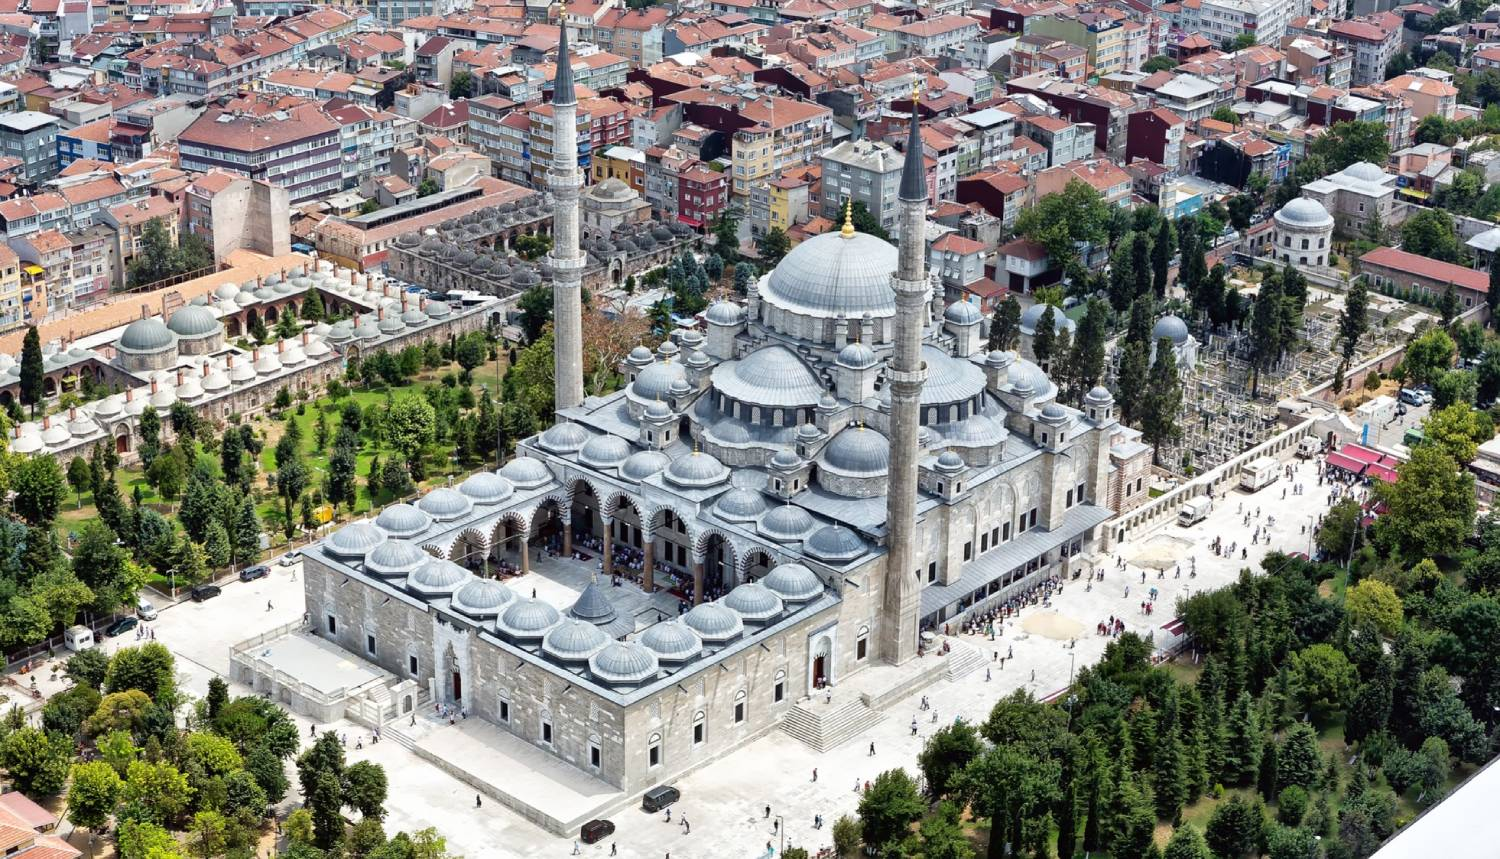 Suleymaniye Mosque - Things To Do In Istanbul